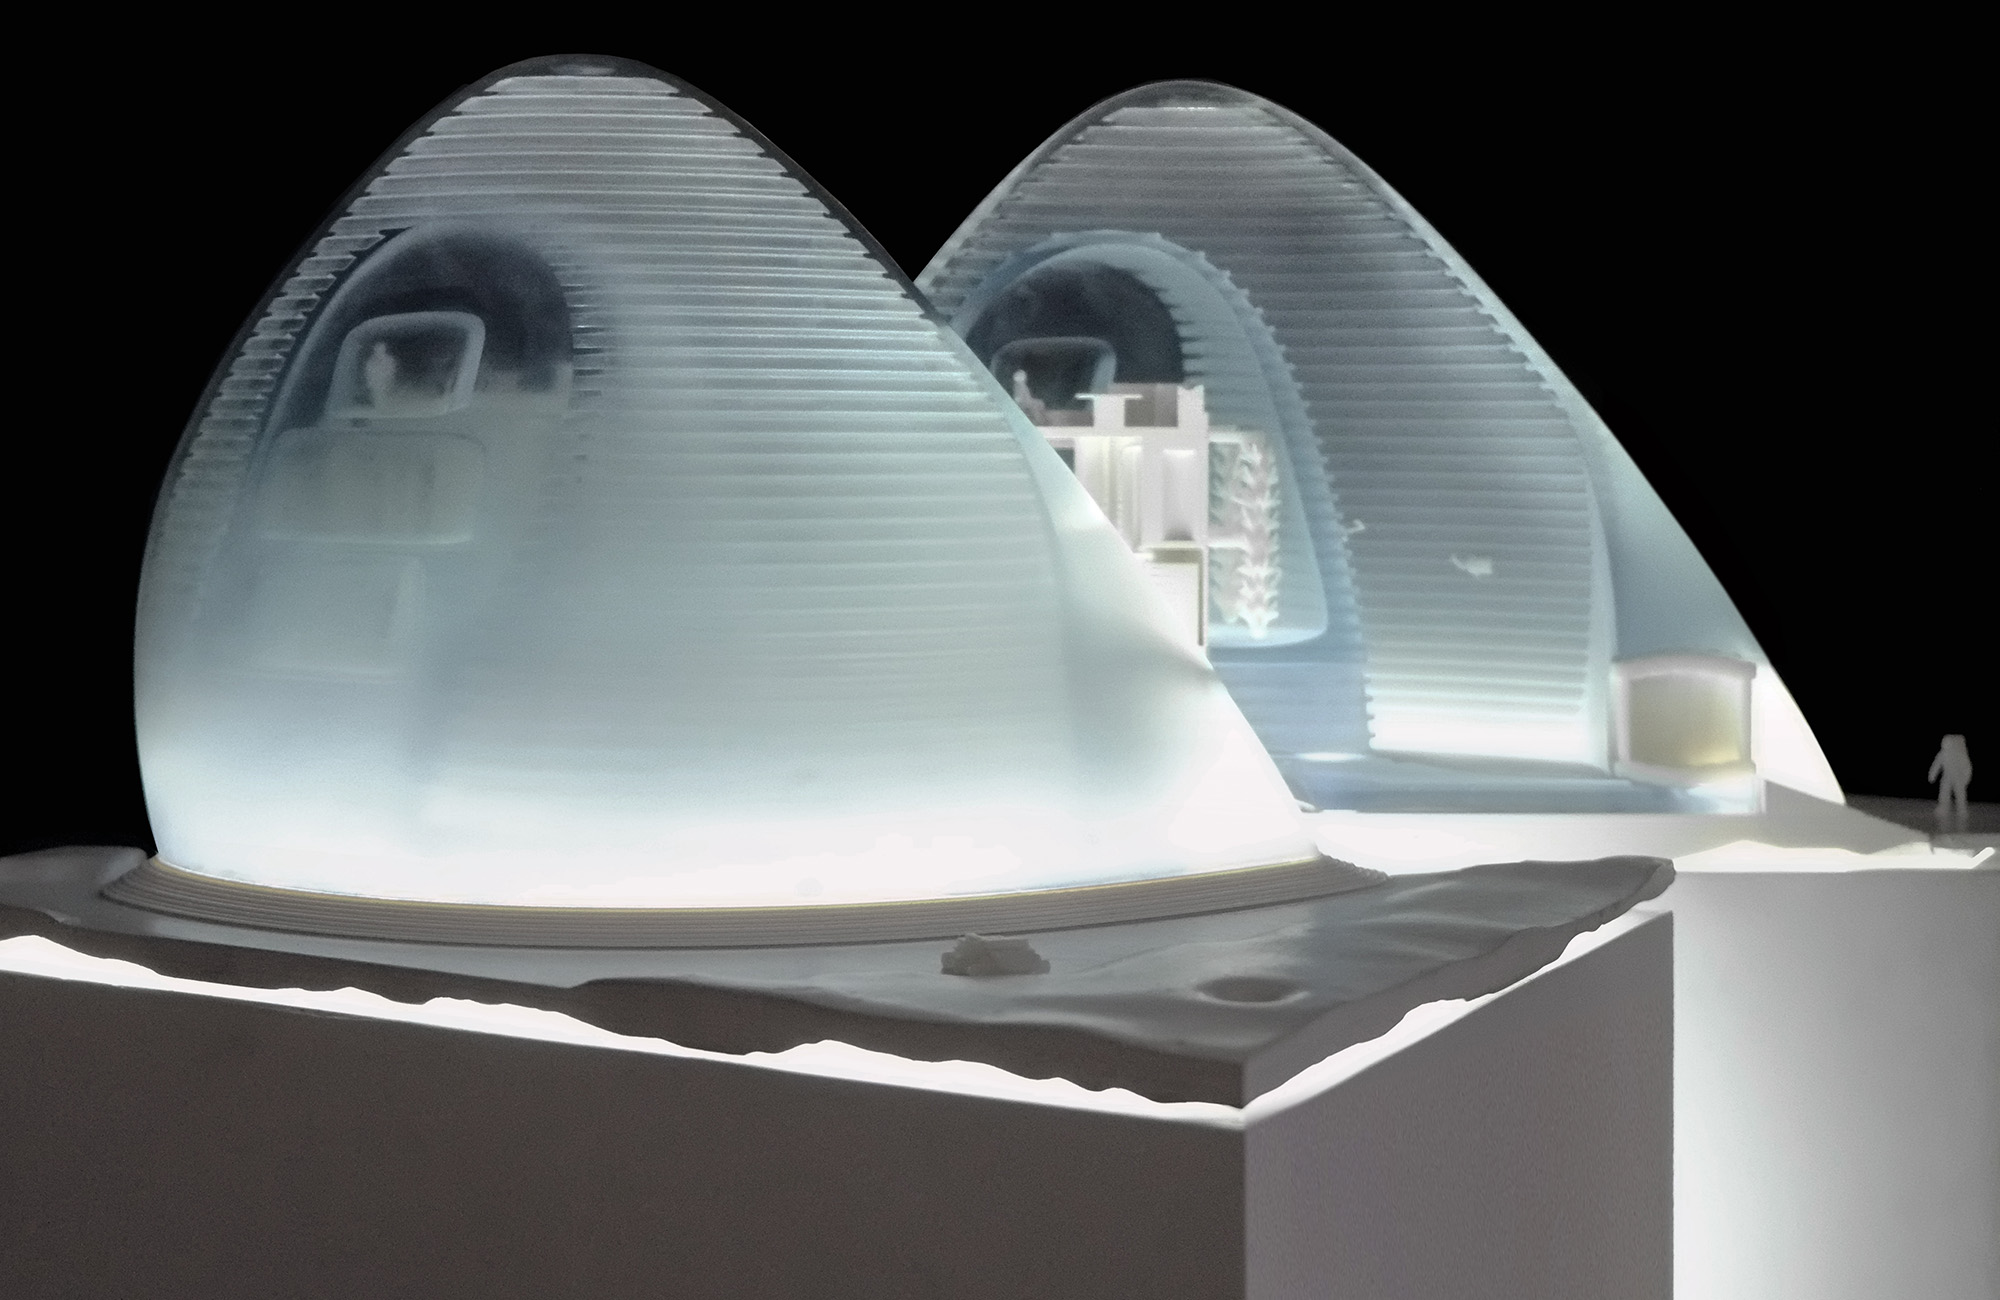 architect pair tap 3 d printing ice to share top nasa prize for mars habitat design the japan. Black Bedroom Furniture Sets. Home Design Ideas